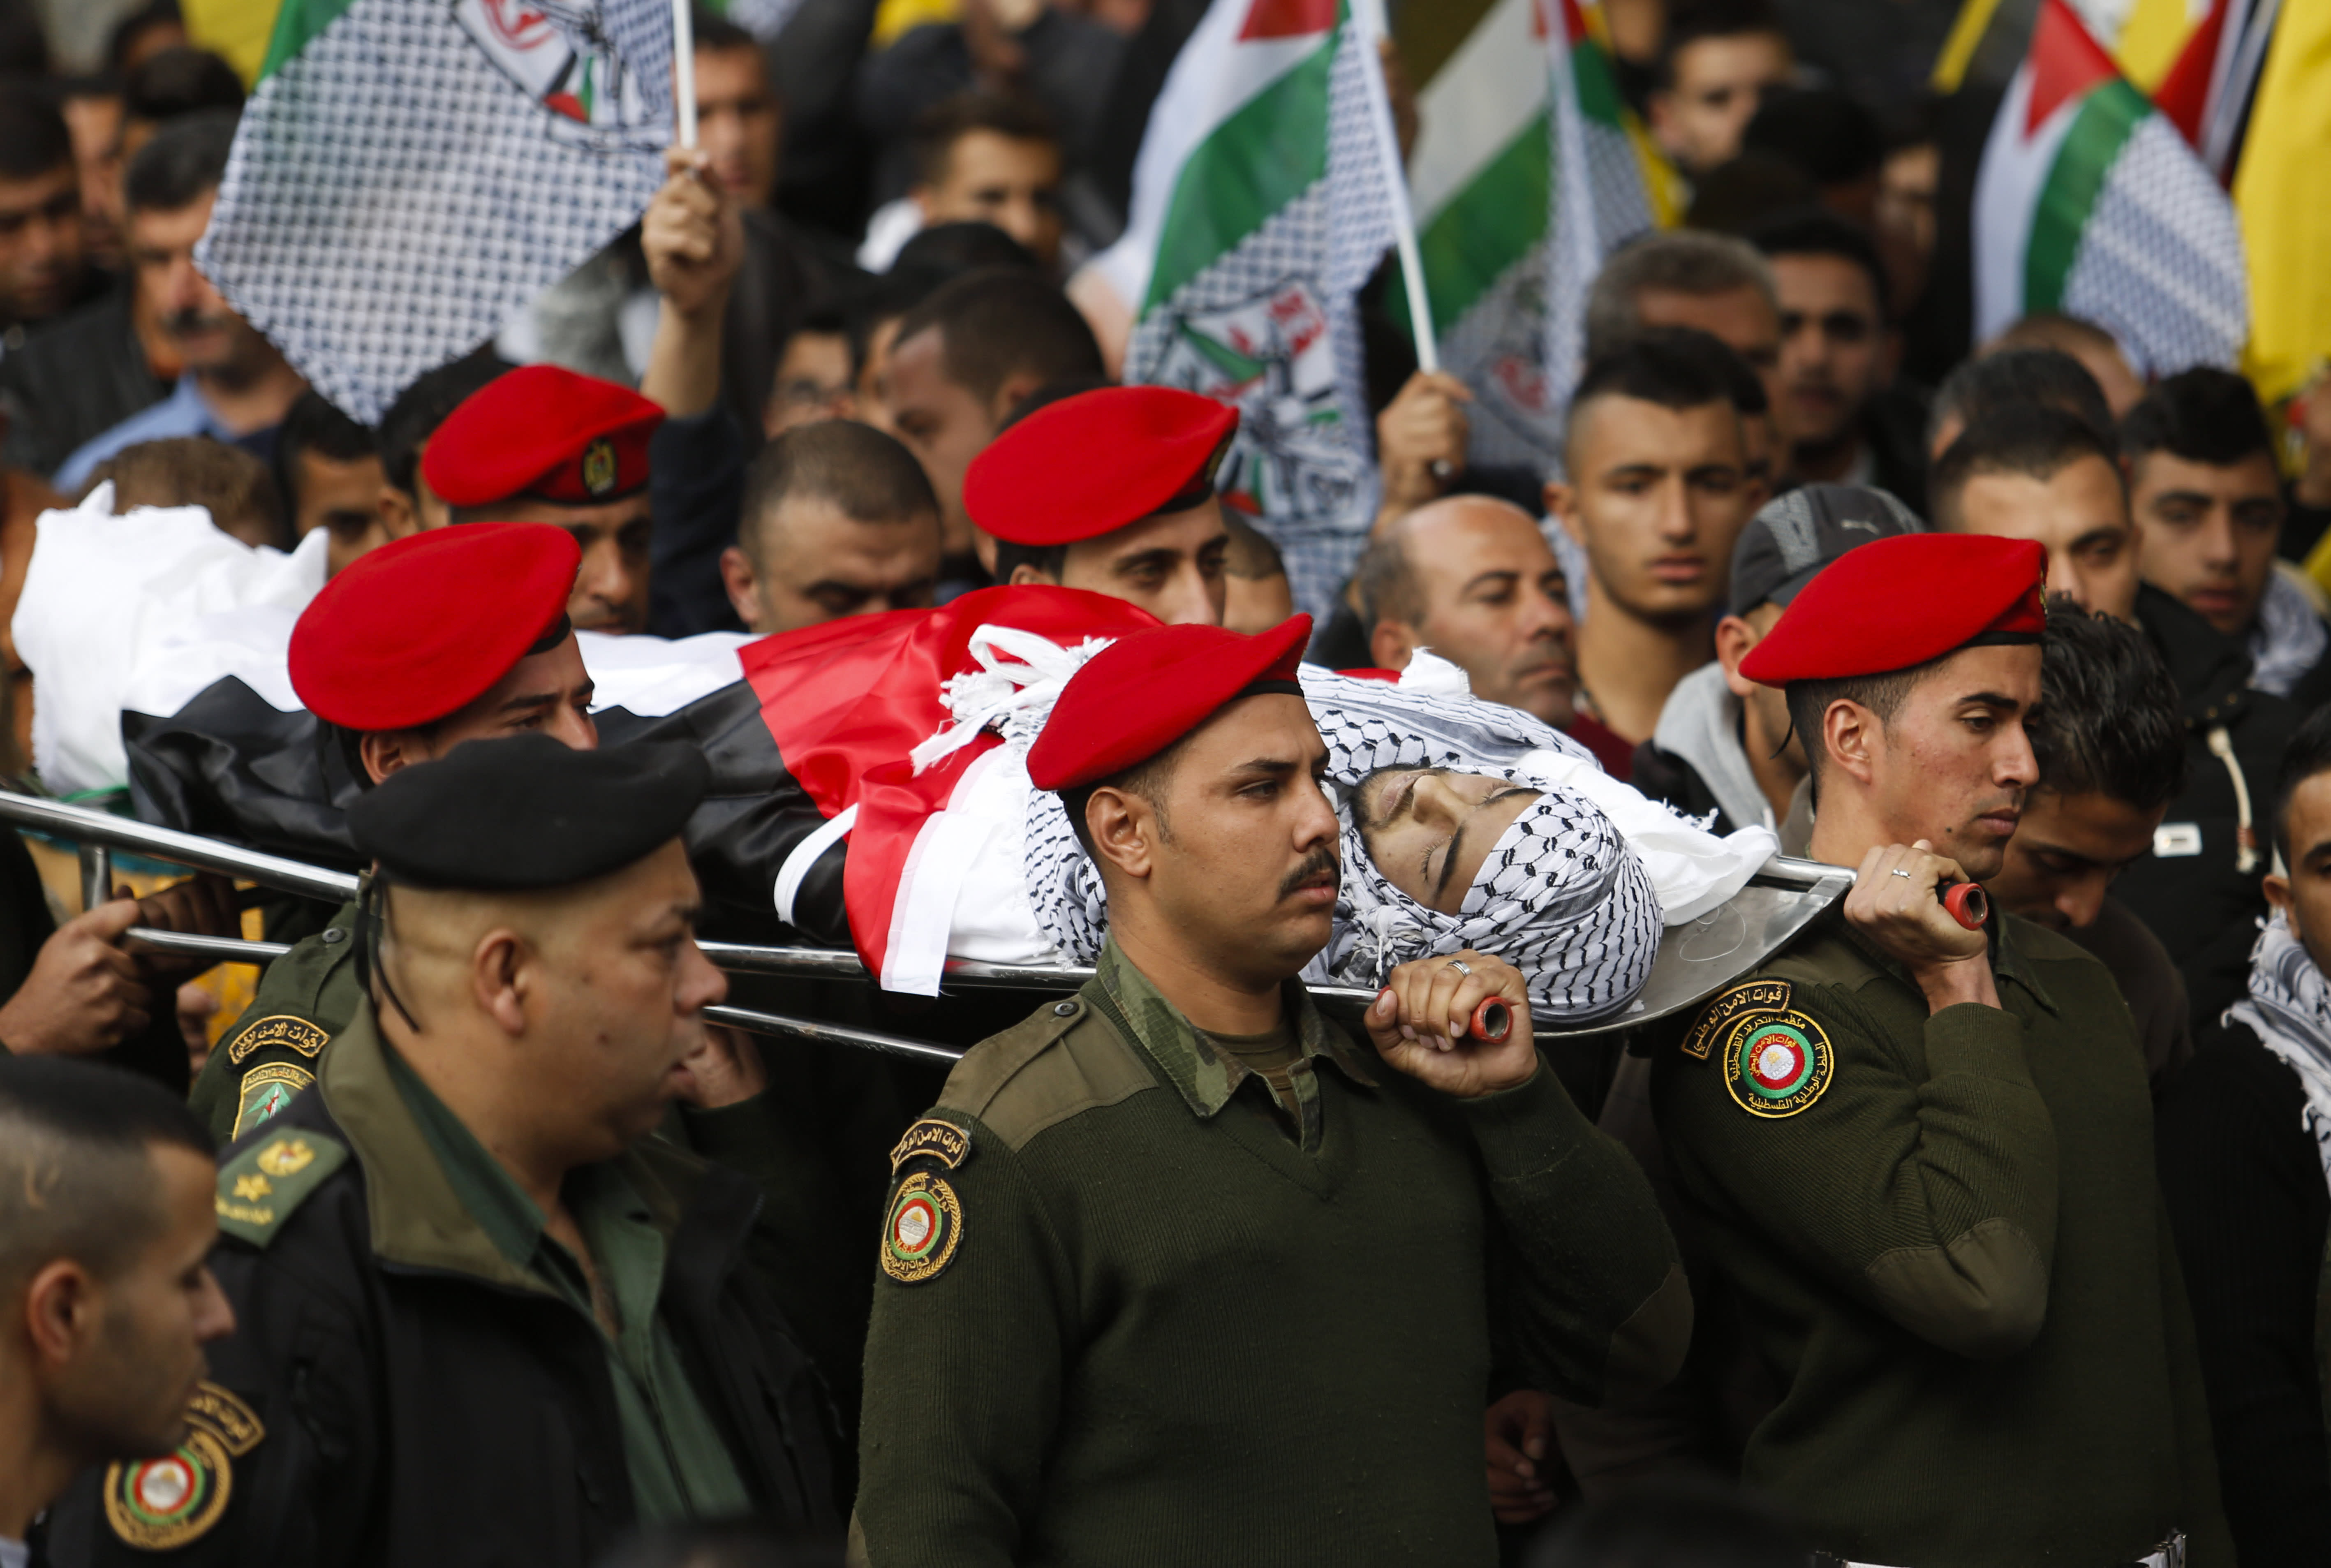 Israel to build new fence; 2 Palestinians die in West Bank